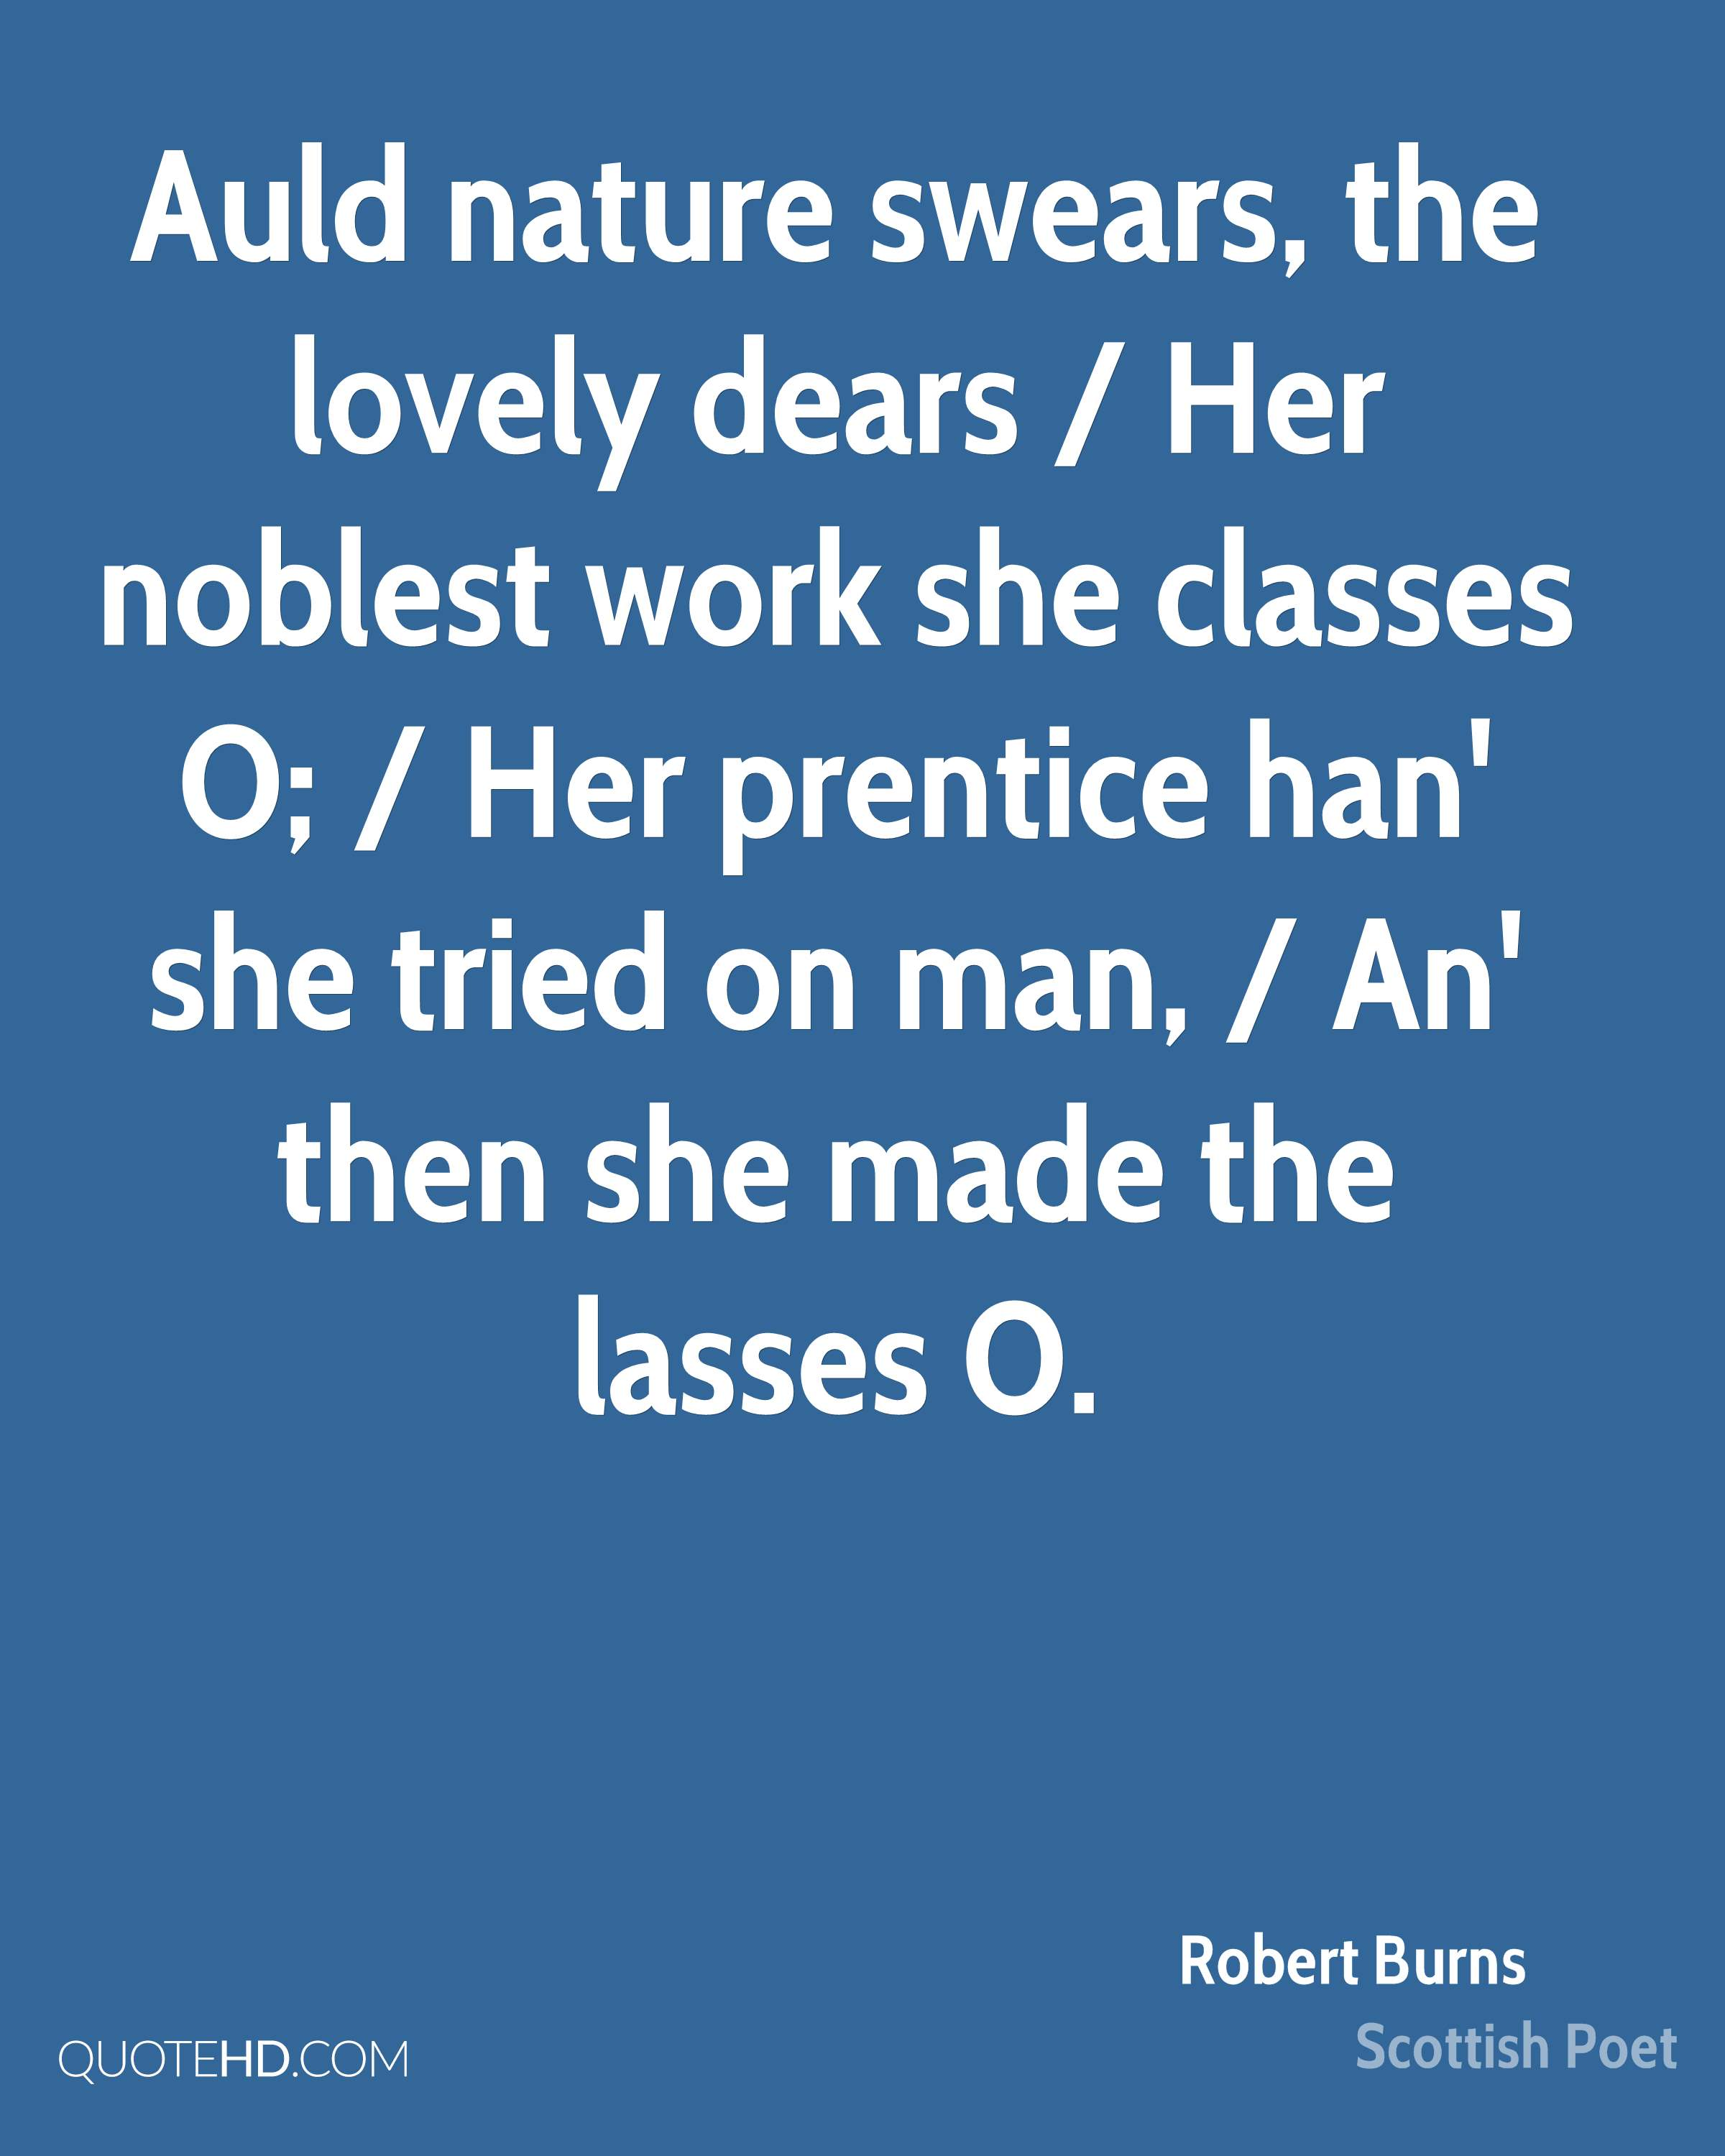 Auld nature swears, the lovely dears / Her noblest work she classes O; / Her prentice han' she tried on man, / An' then she made the lasses O.